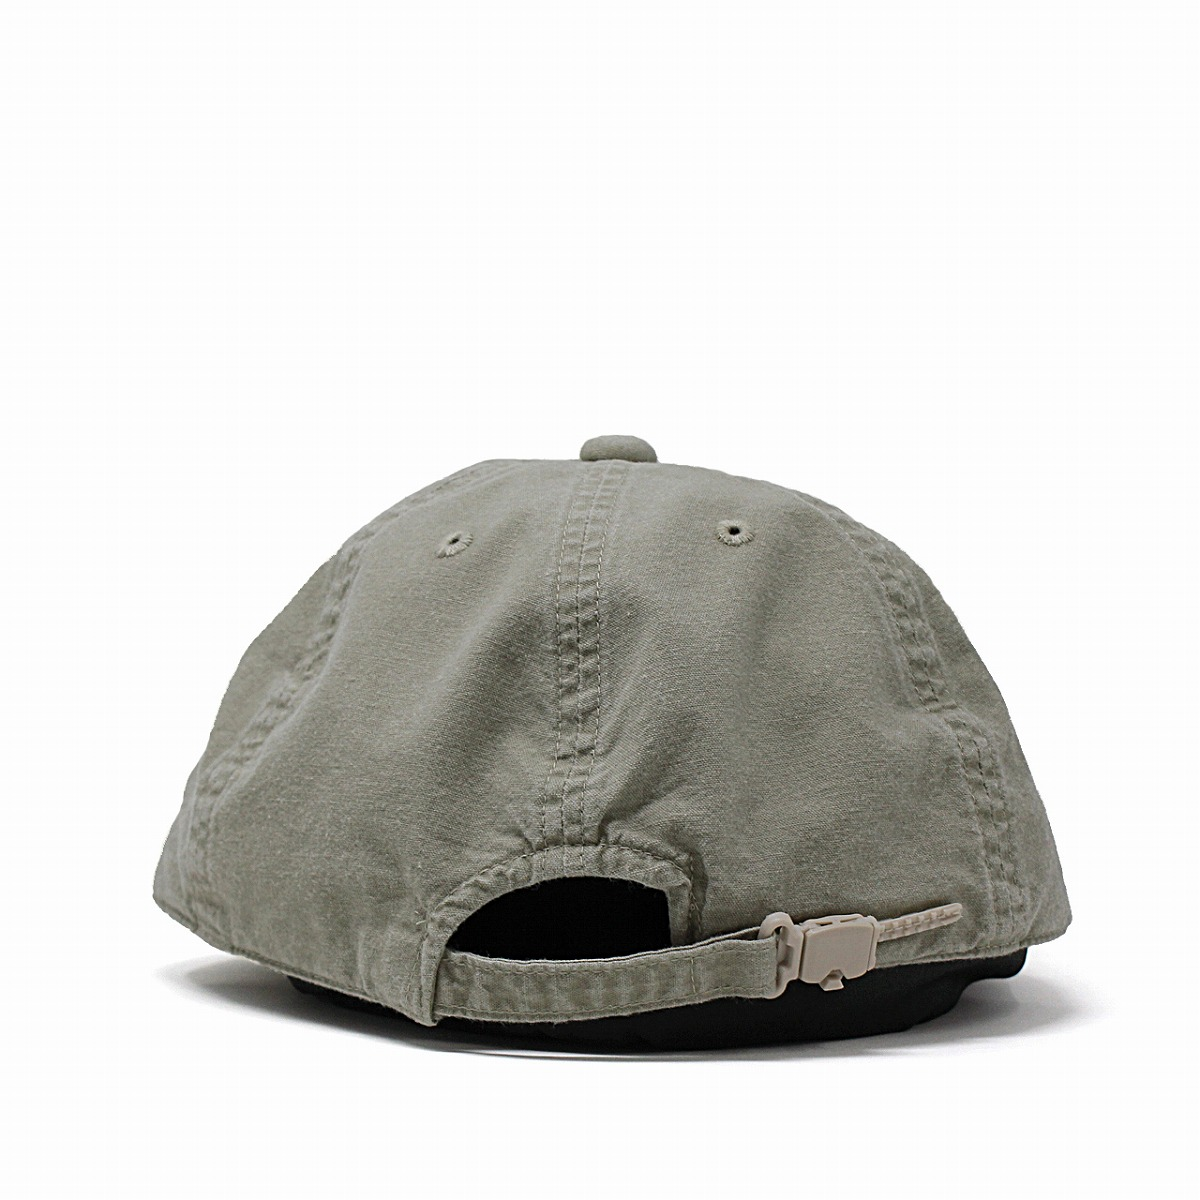 Overdie hat casual folding 6 cap men Stetson size adjustment olive   baseball cap  stetson hat mail order gift present classic in STETSON cap  oar season 4419d7969743